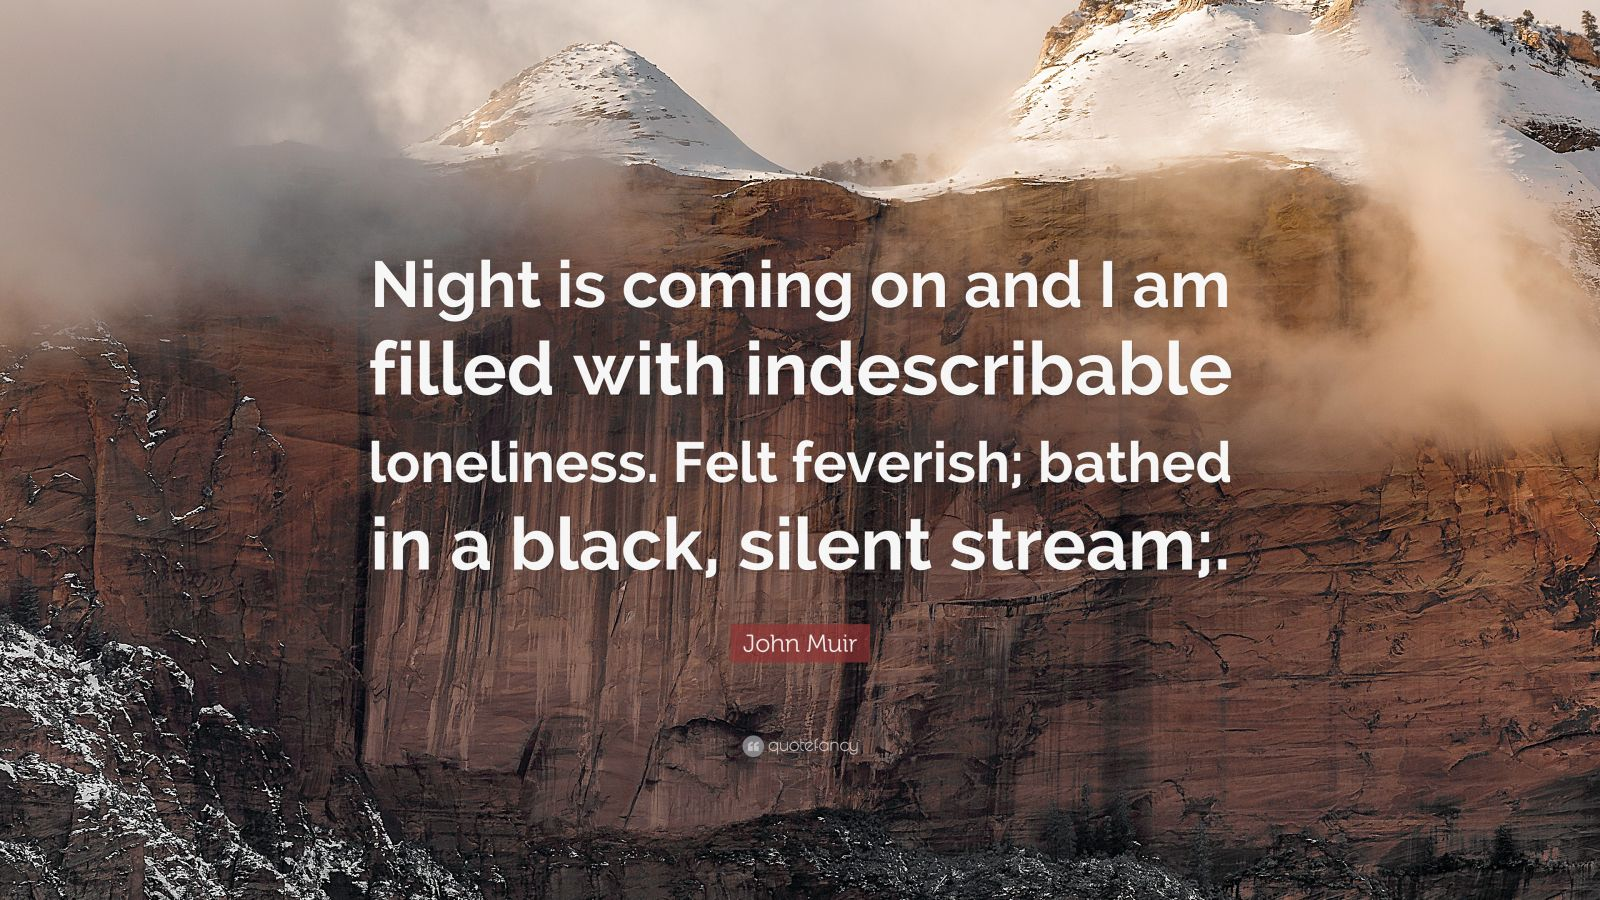 """""""Night is coming on and I am filled with indescribable loneliness. Felt feverish; bathed in a black, silent stream;.""""Get Inspired. Get Motivated."""